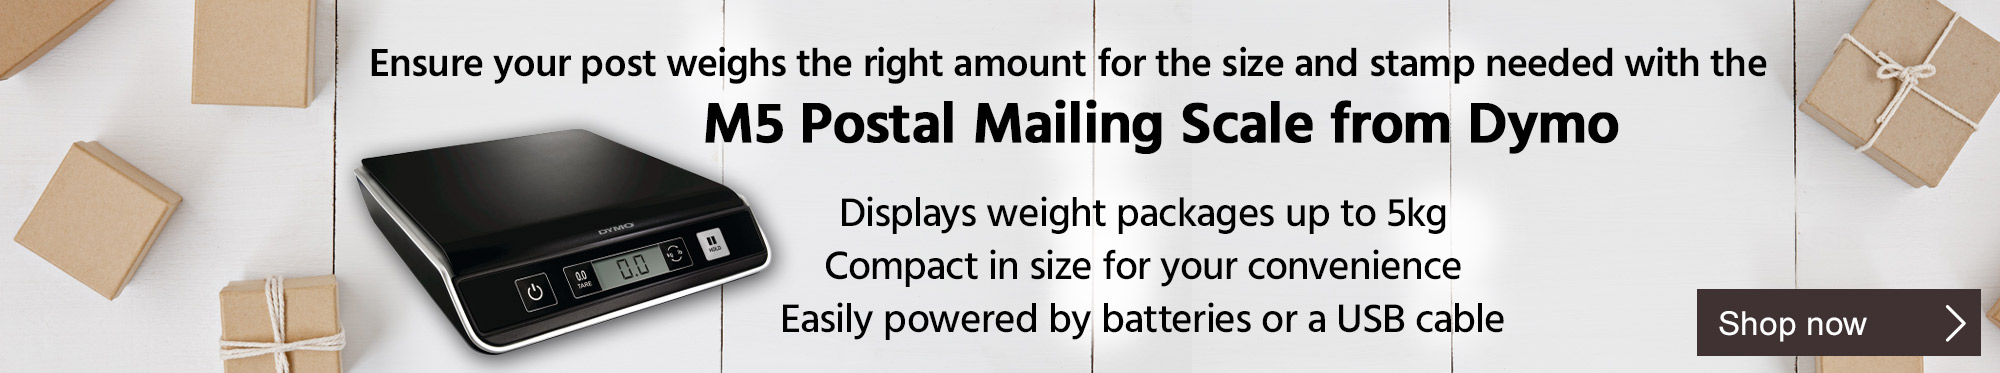 Dymo M5 Postal Mailing Scale